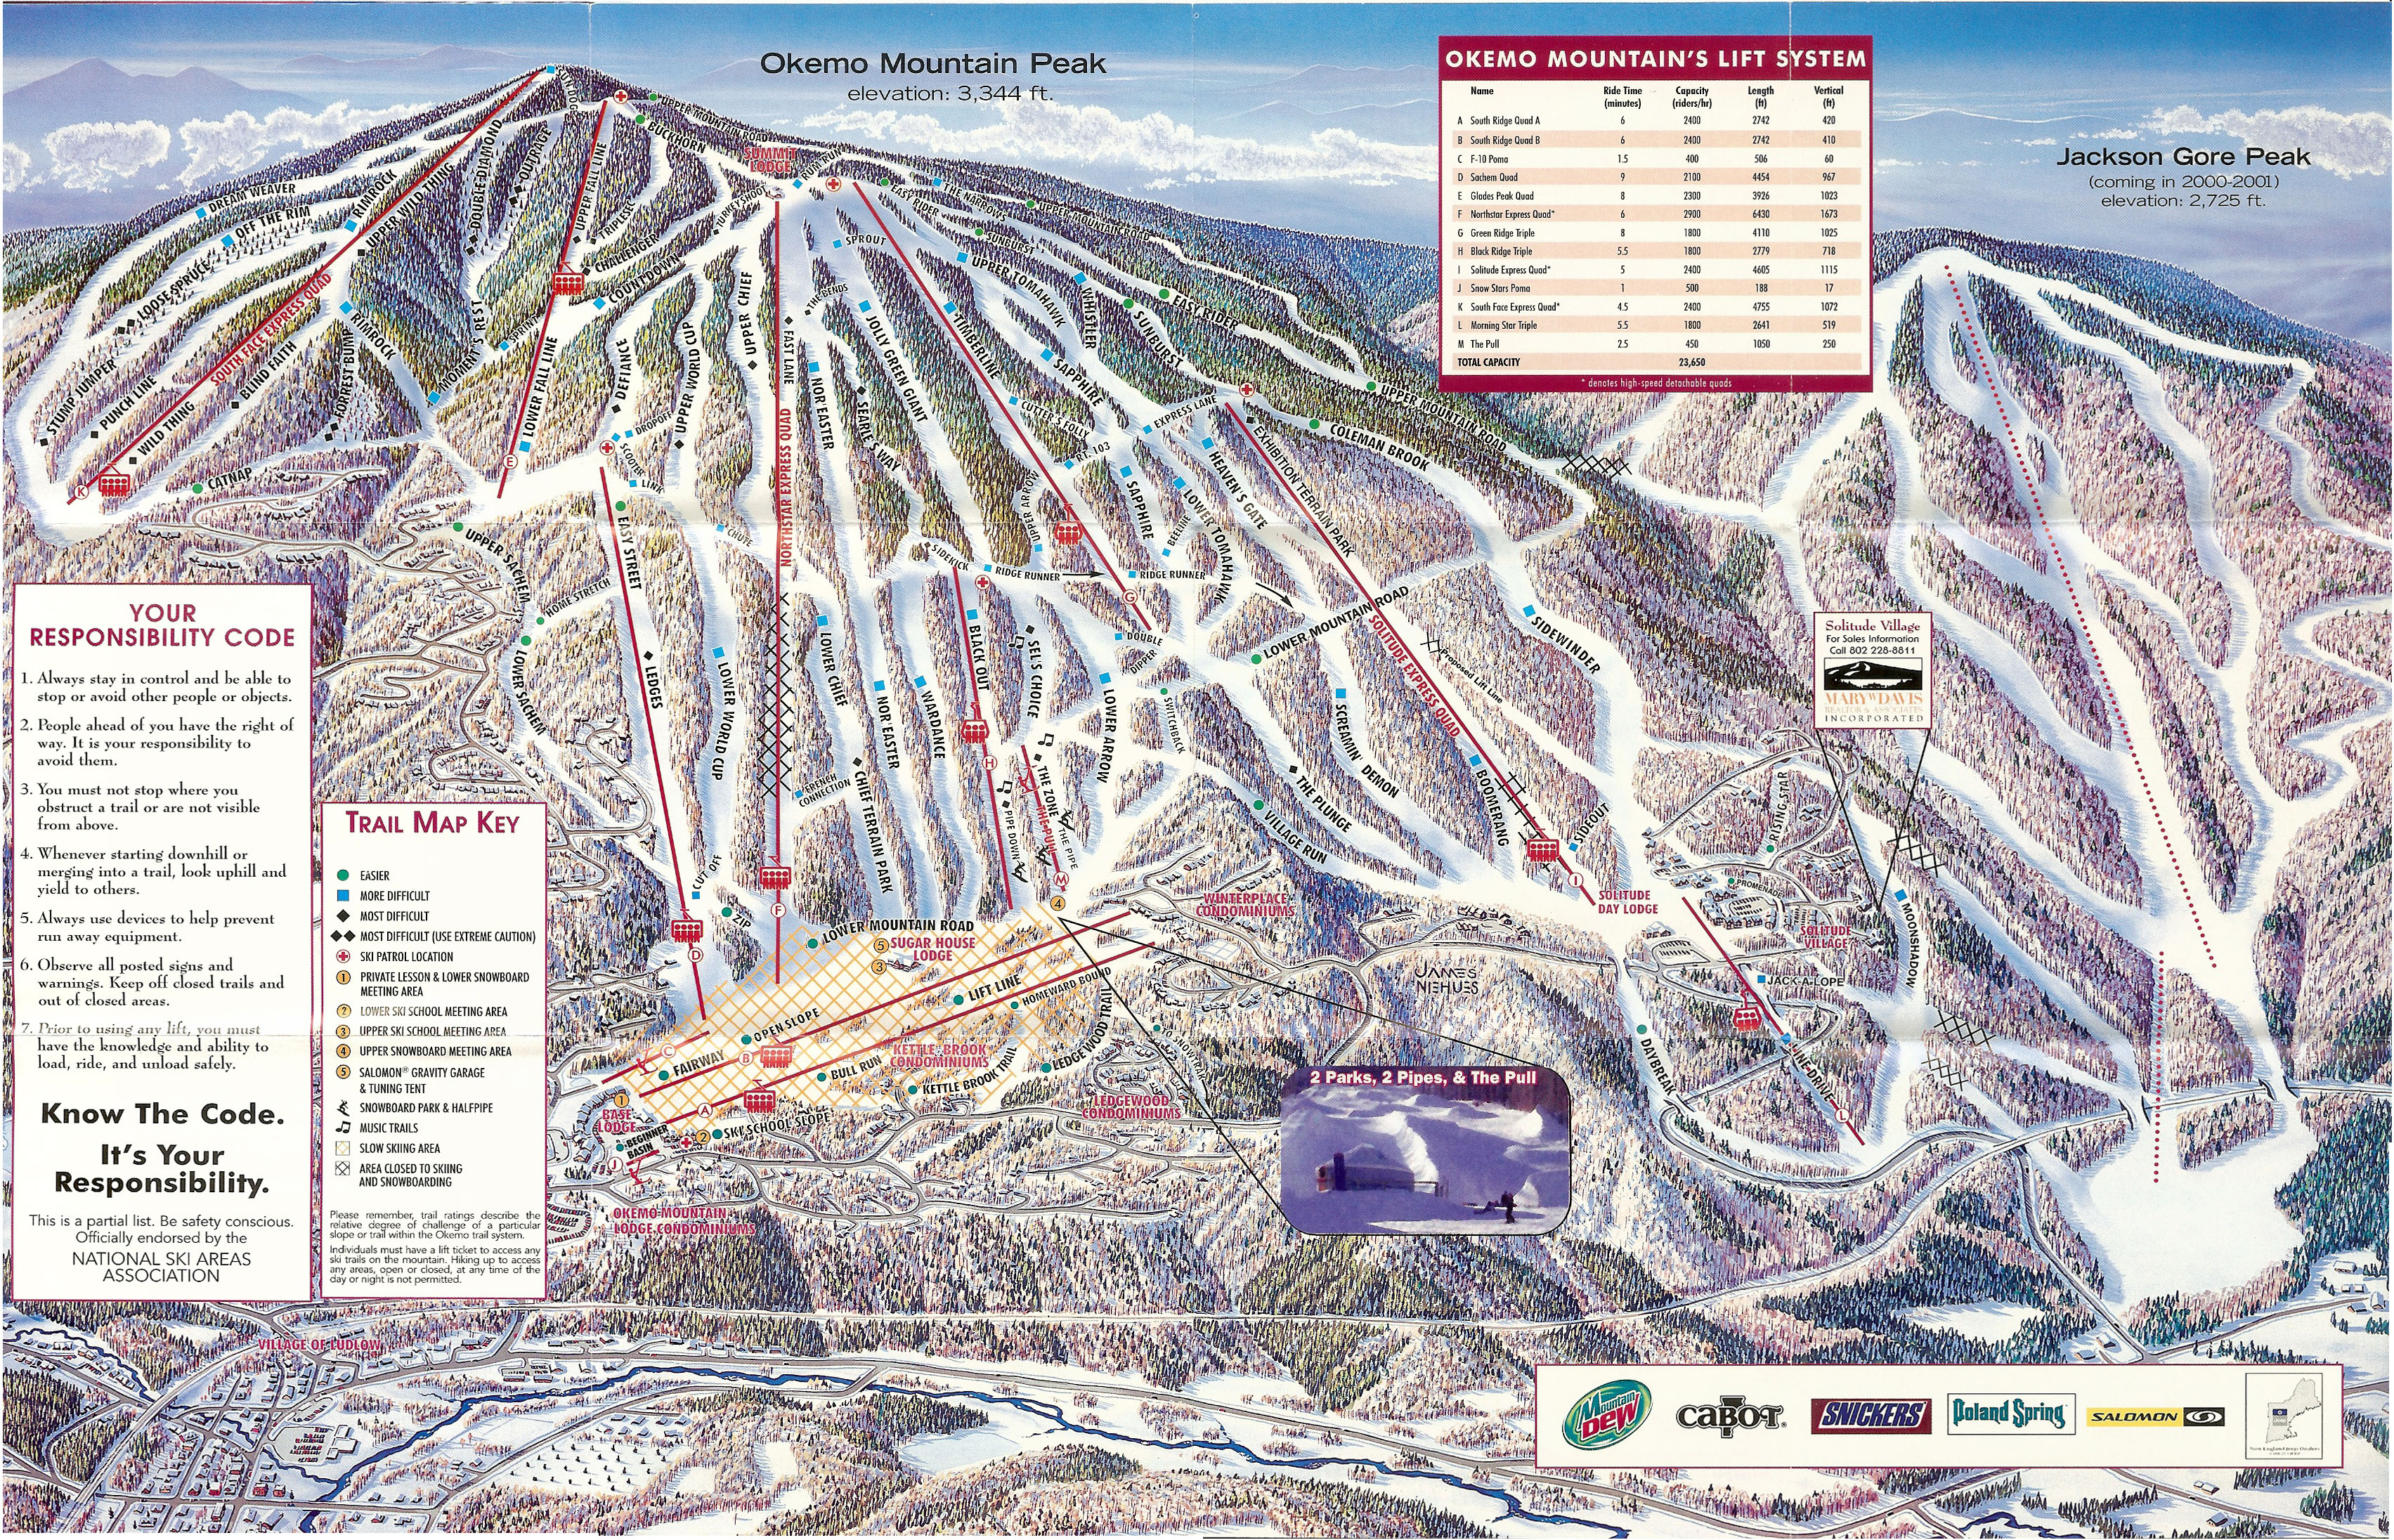 okemo map with 204 on 14626886427 likewise Okemo Mountain Resort Ludlow Vermont Attraction Photos furthermore Florida Theme Parks likewise Orange Bubble Chair Lift besides 193.